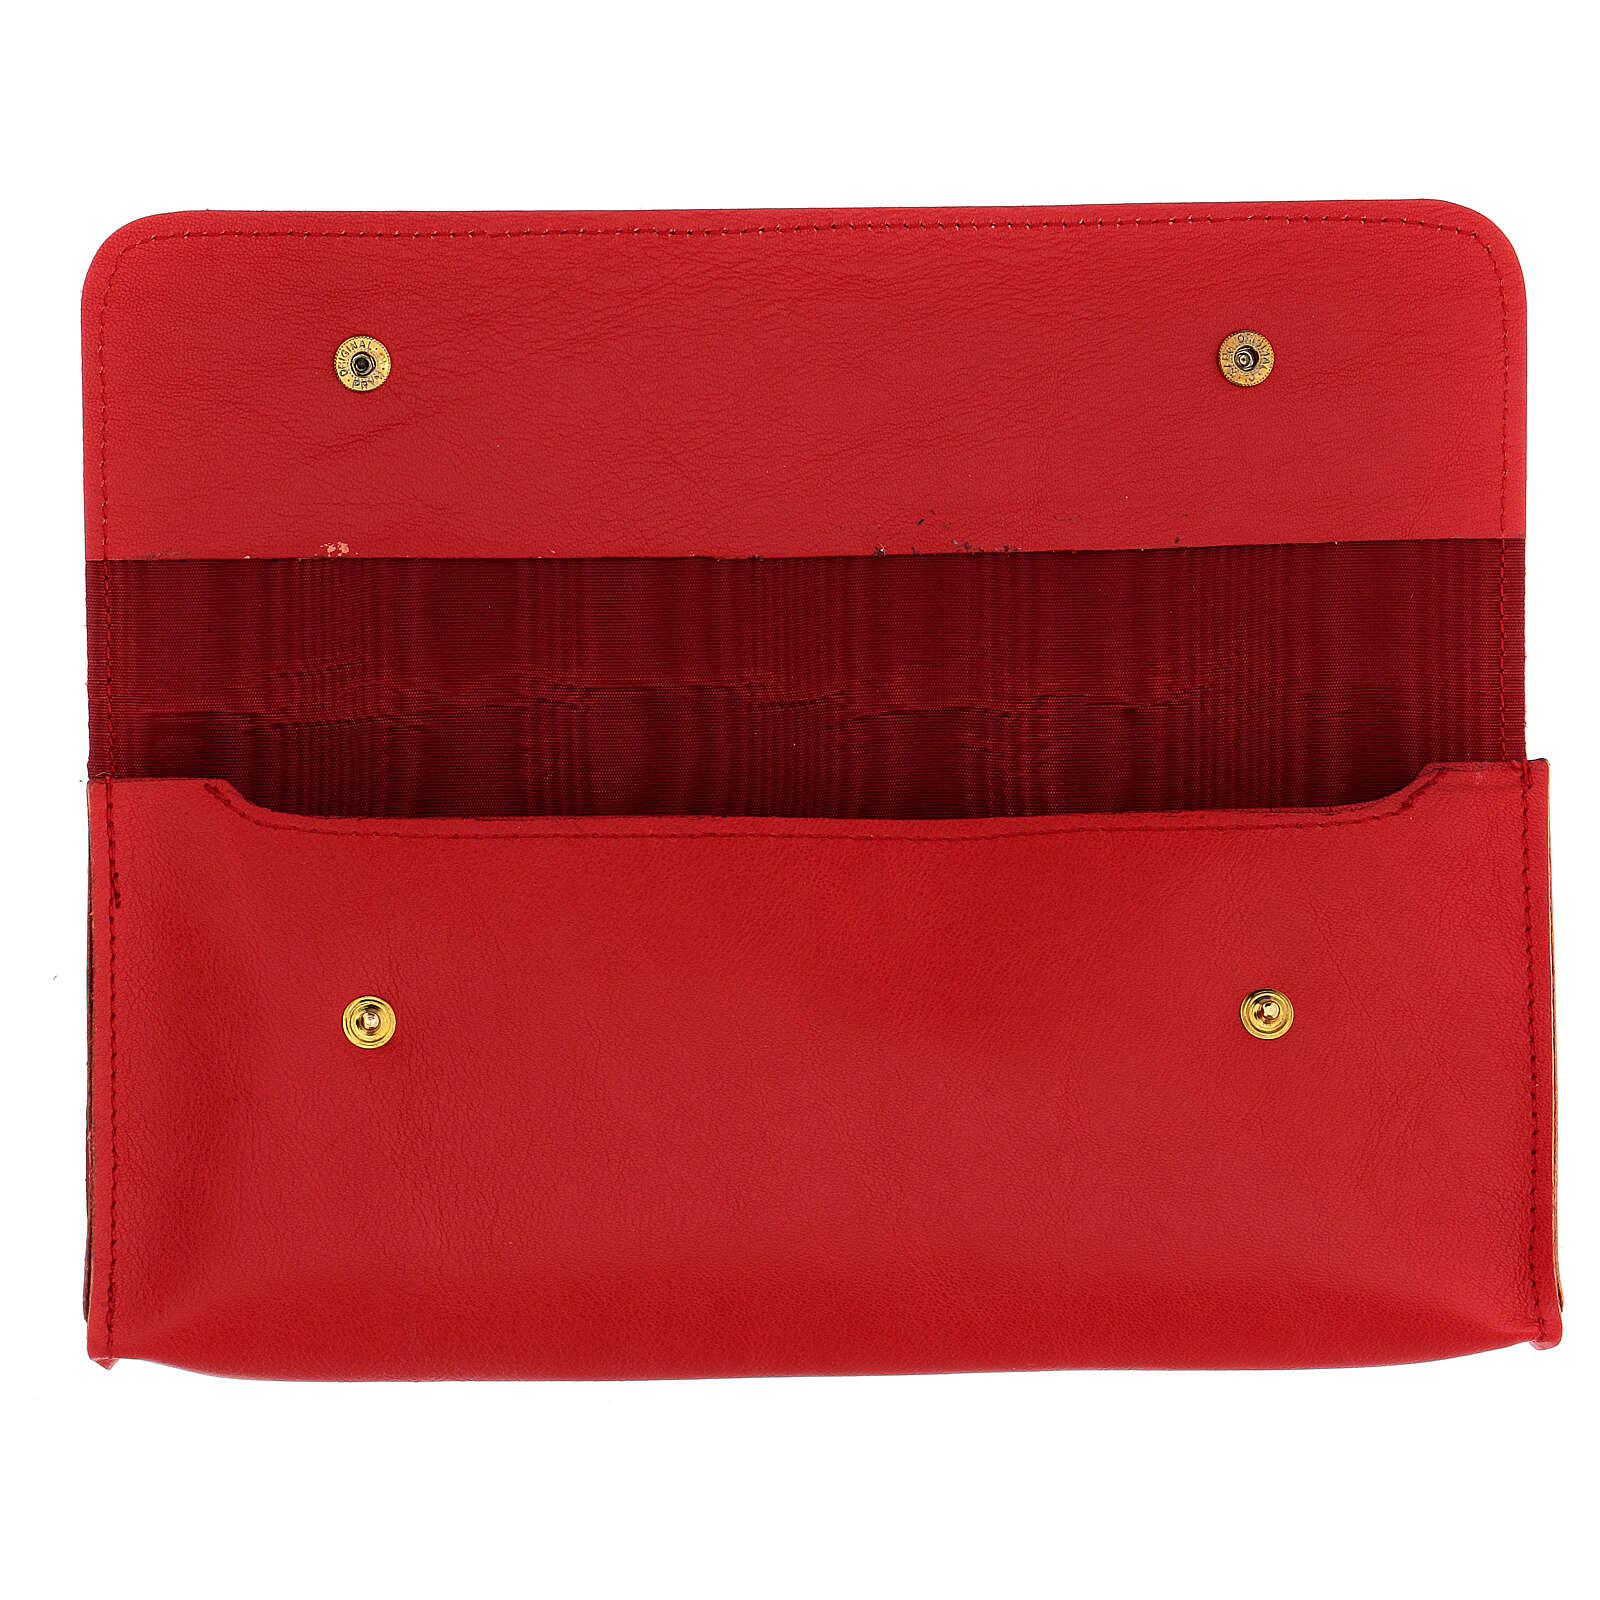 Rectangular stole burse of real red leather 4